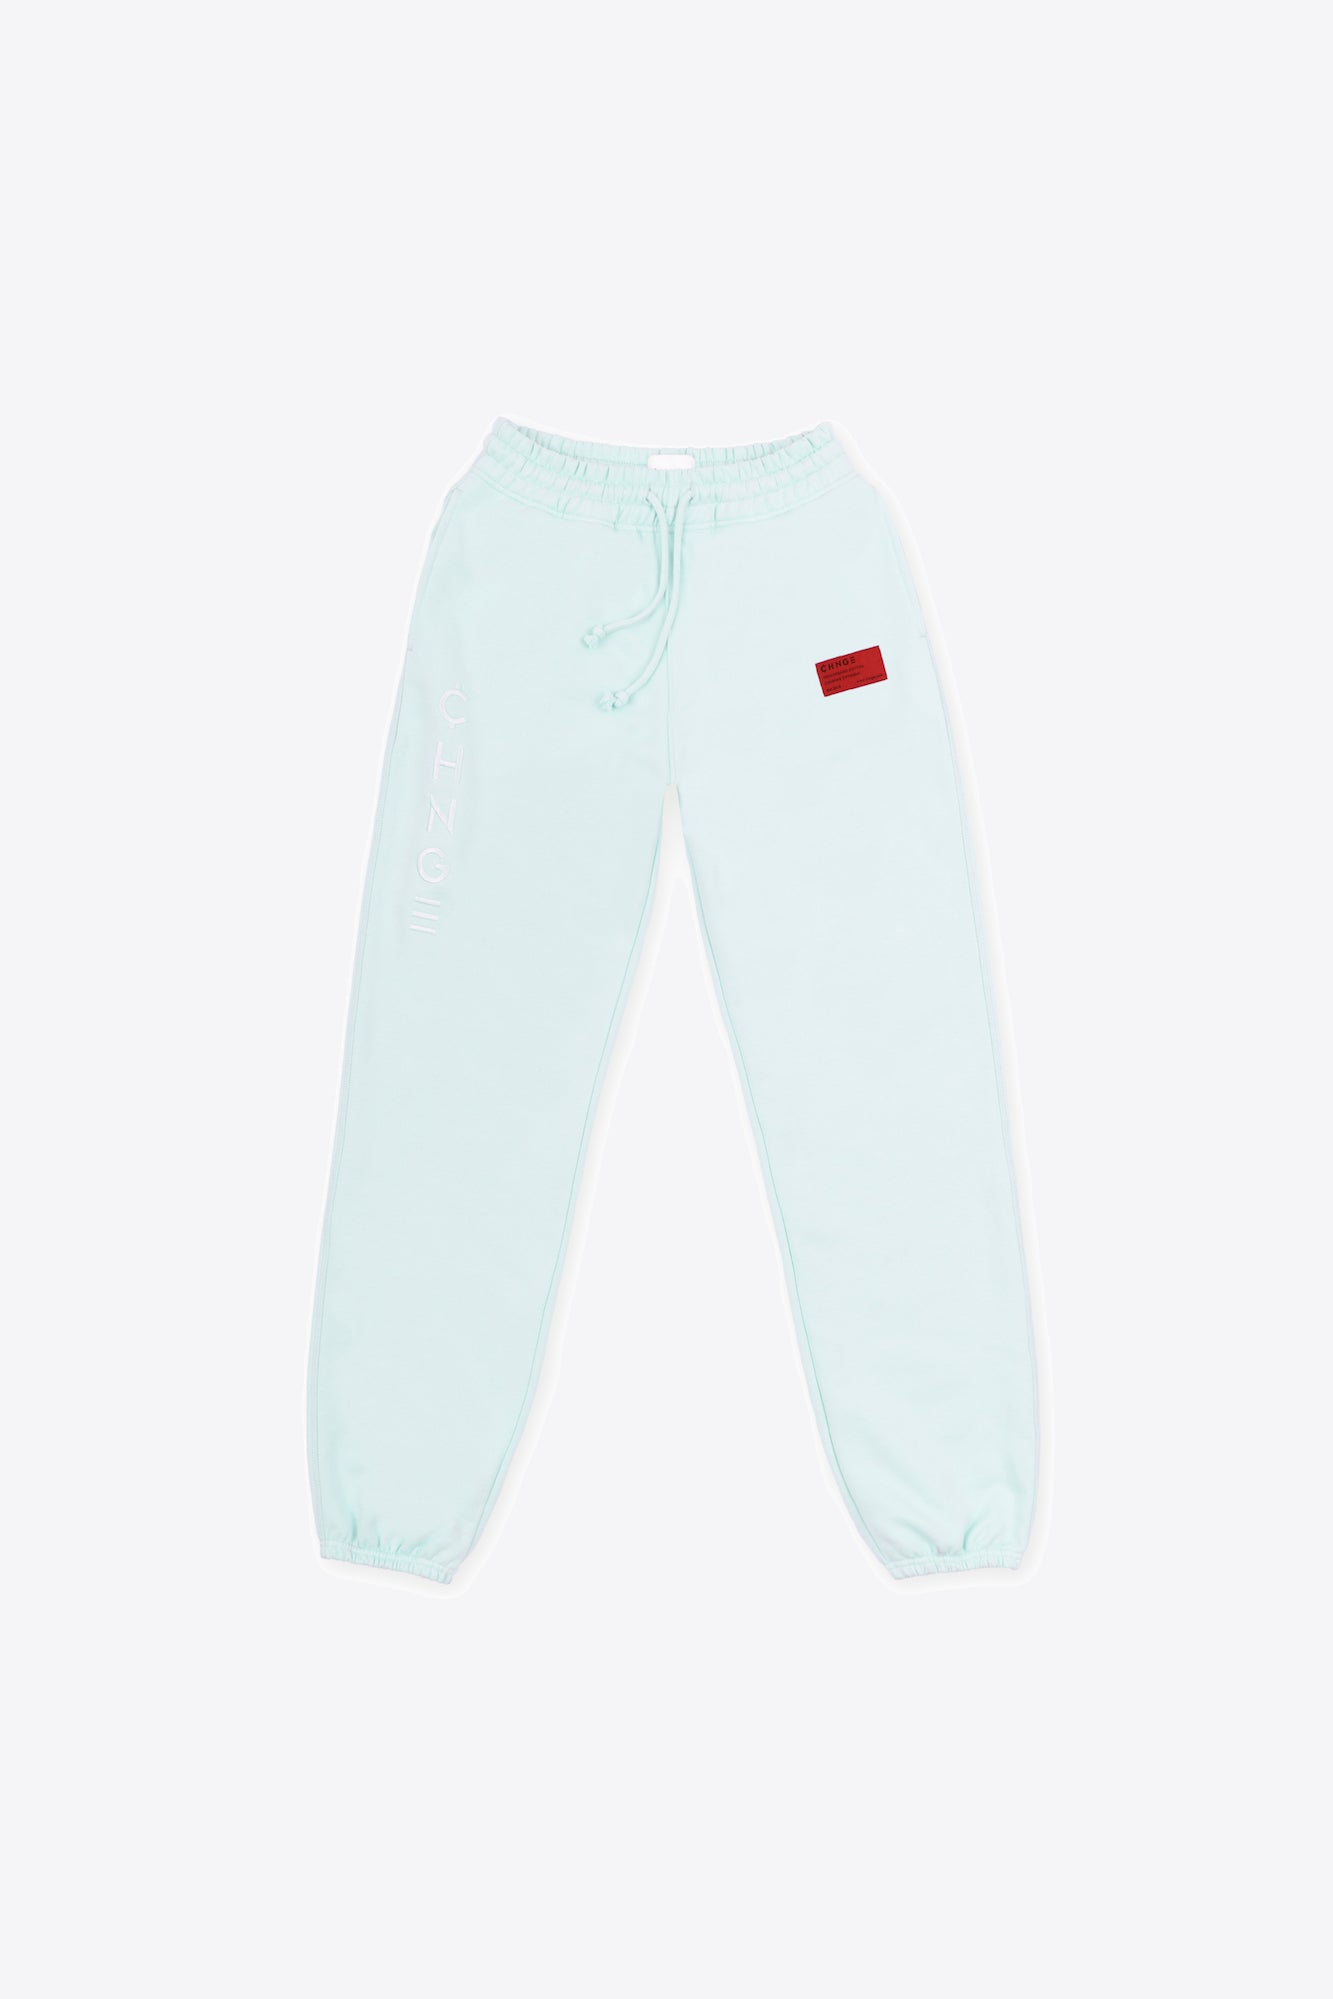 Mint Tonal Embroidered Sweatpants